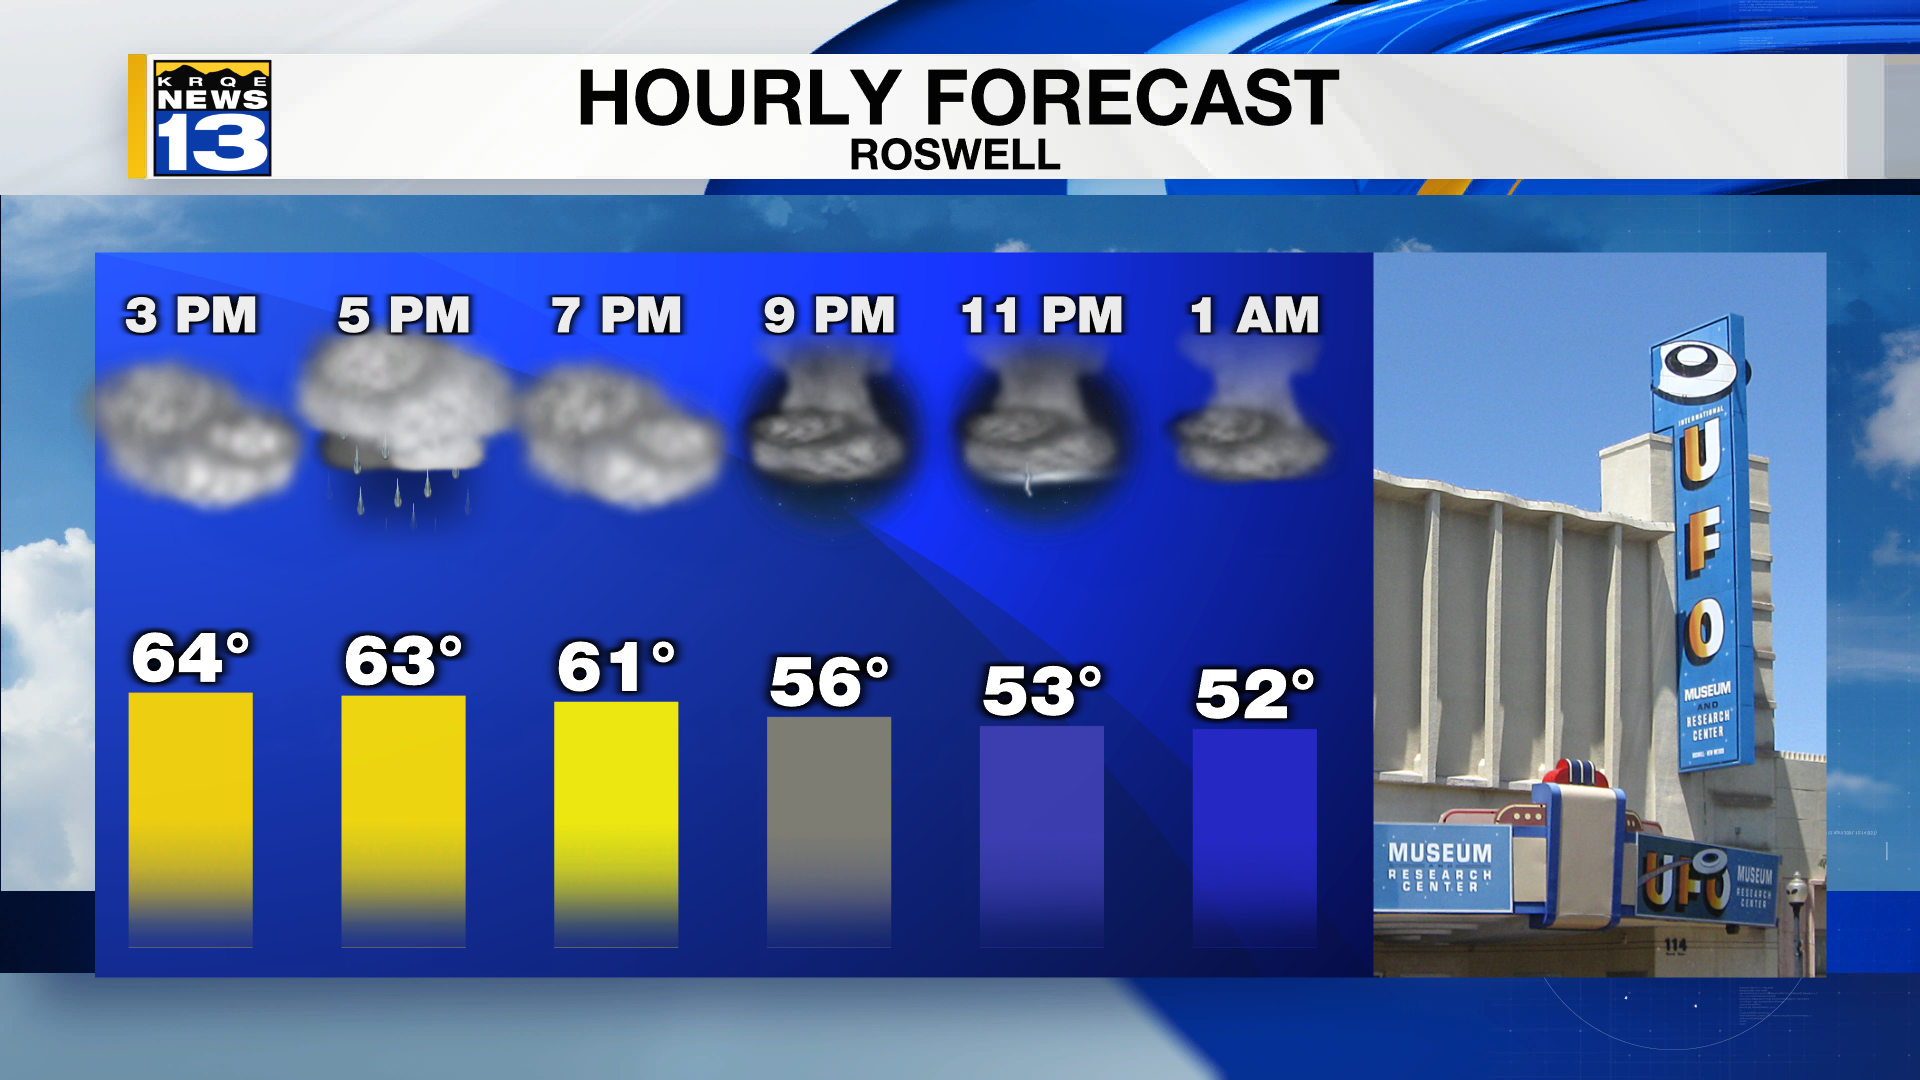 Hourly Forecast